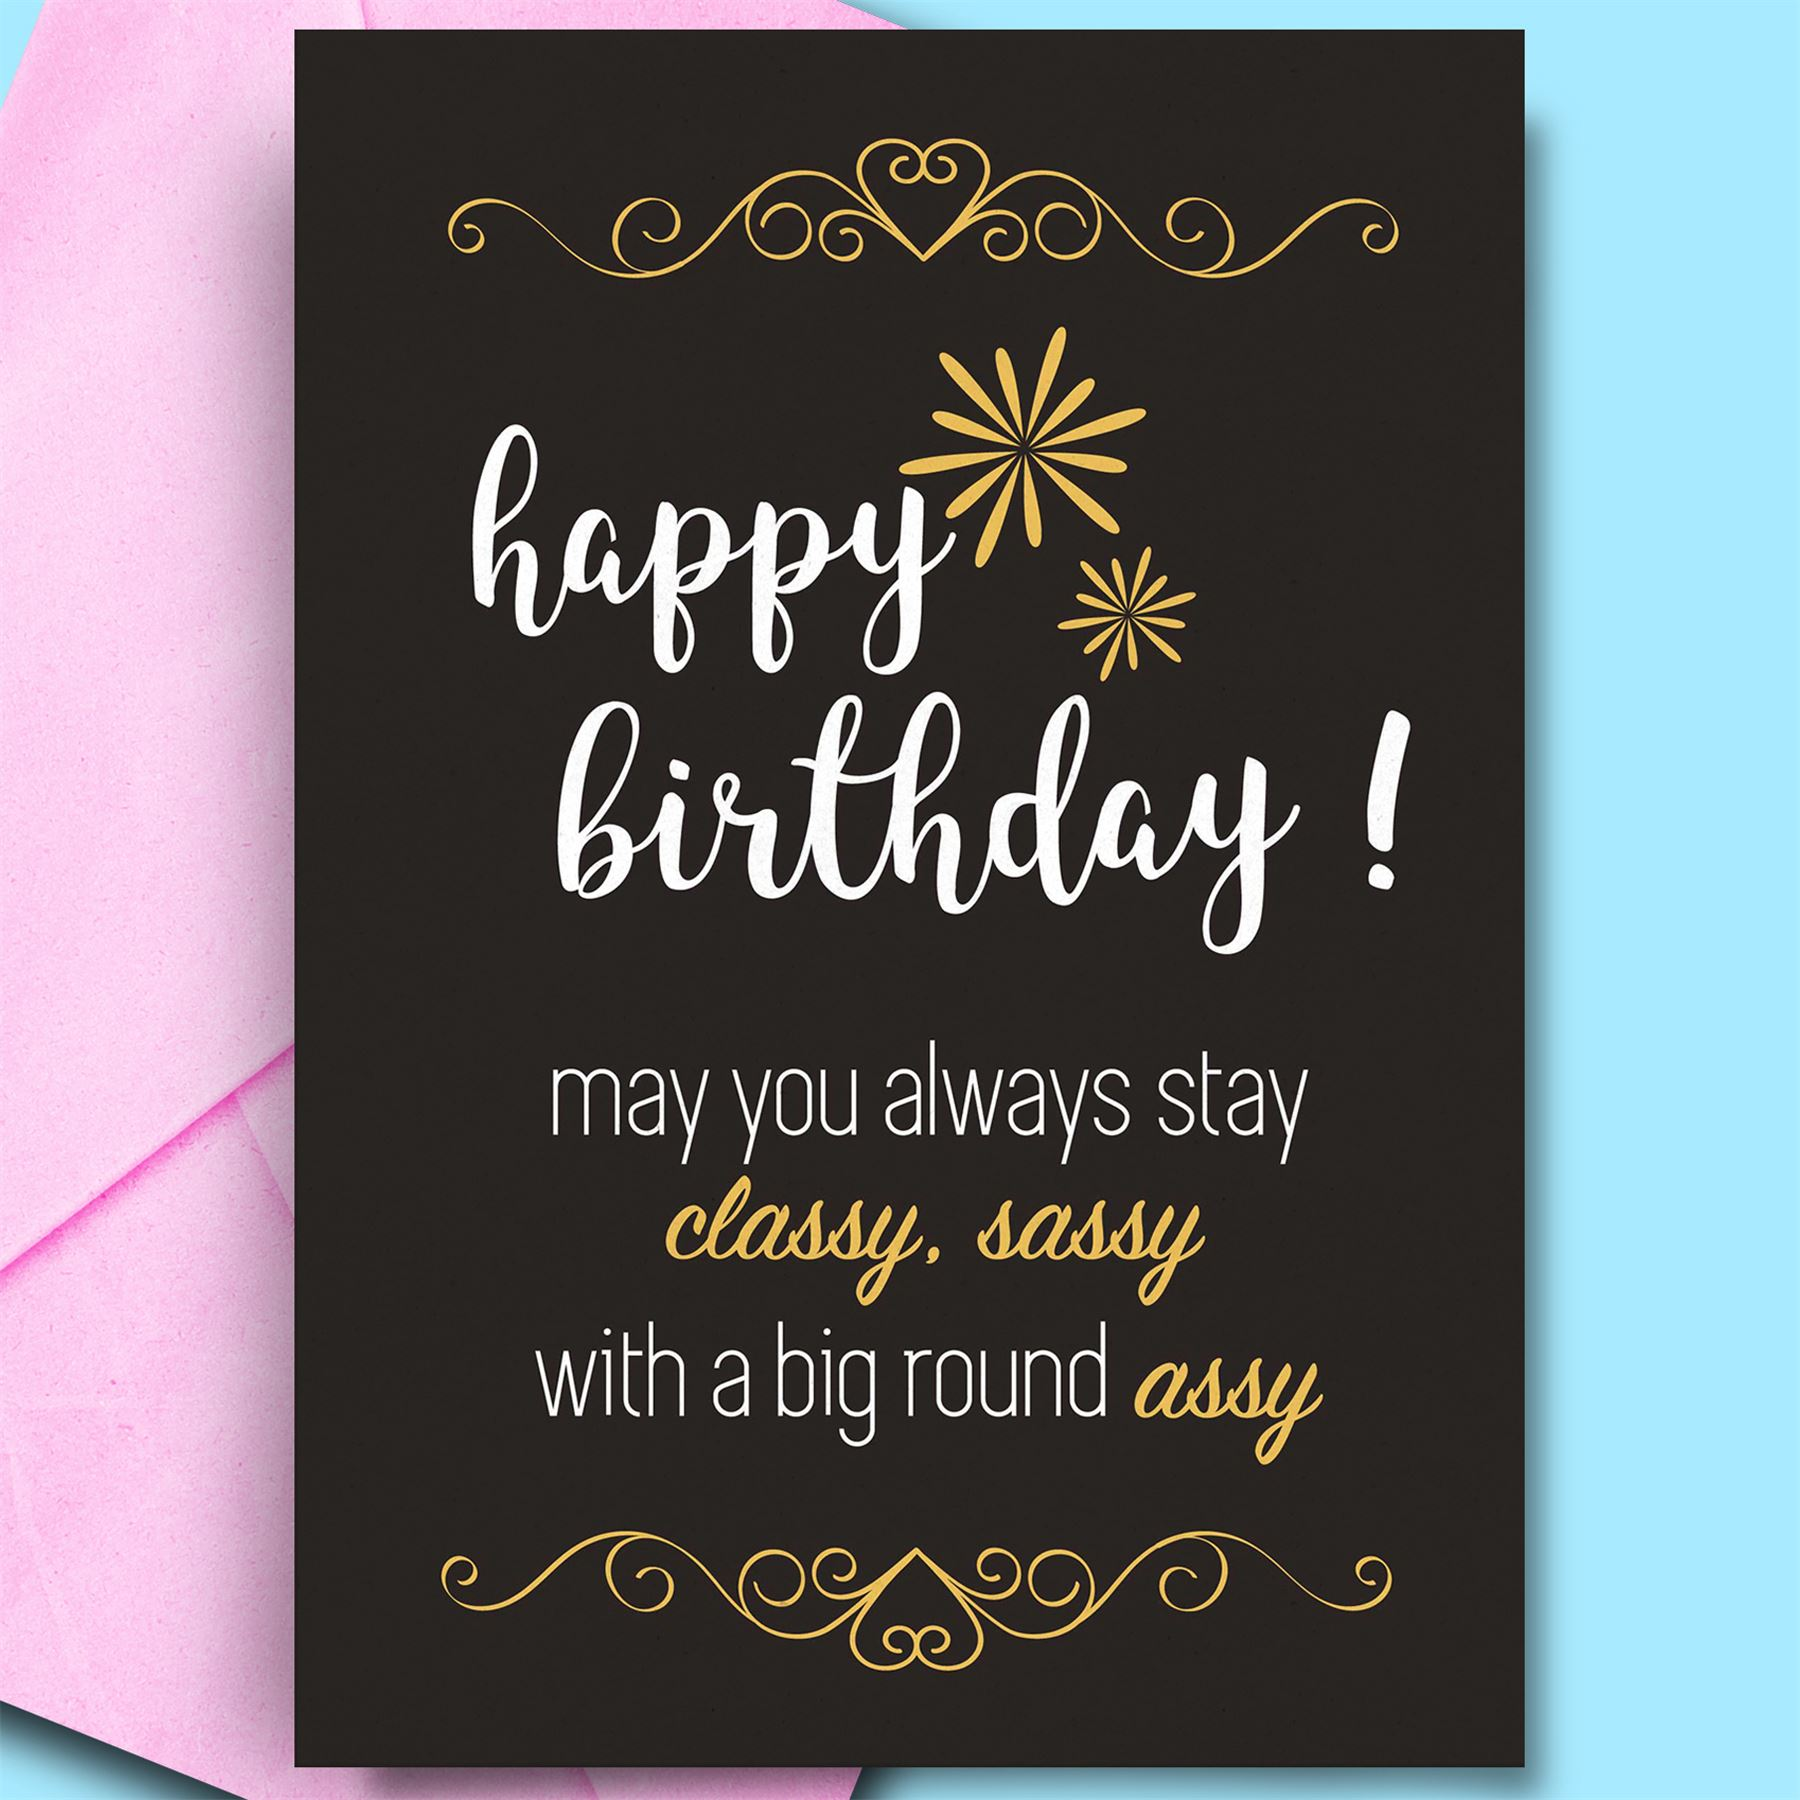 Terrific Funny Happy Birthday Cards For Uncle Mum Dad Friend Comedy Rude Funny Birthday Cards Online Fluifree Goldxyz